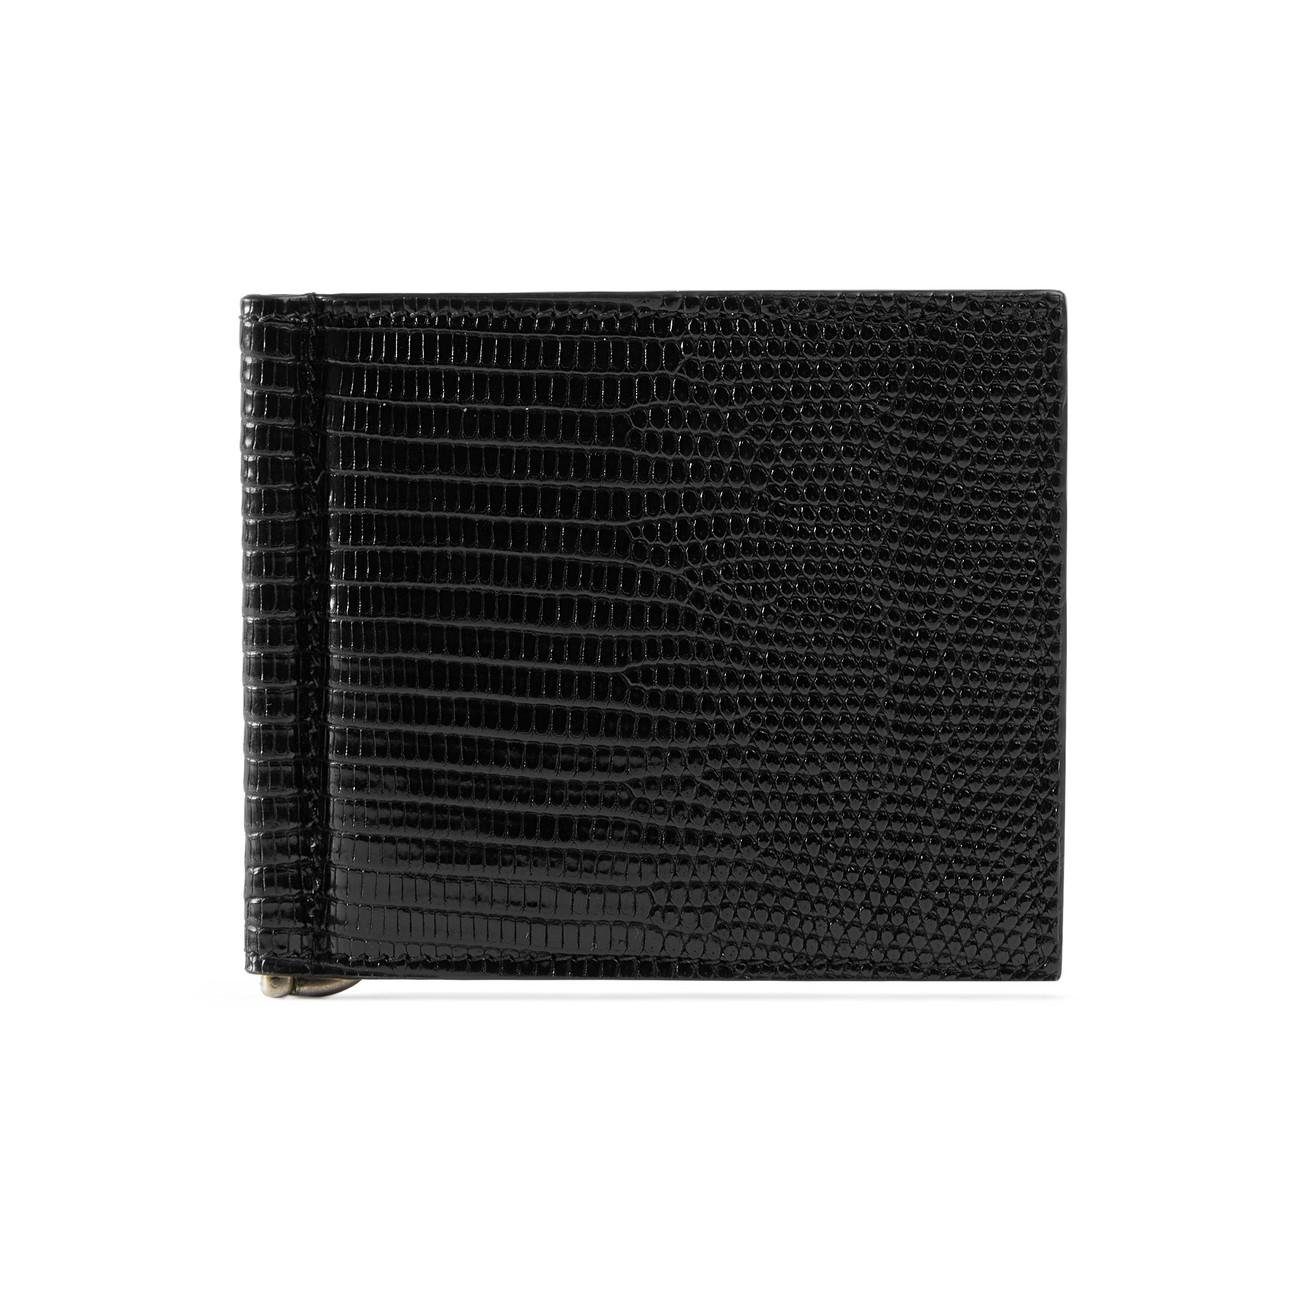 cb317c0691d95 Lyst - Gucci Lizard Money Clip Wallet in Black for Men